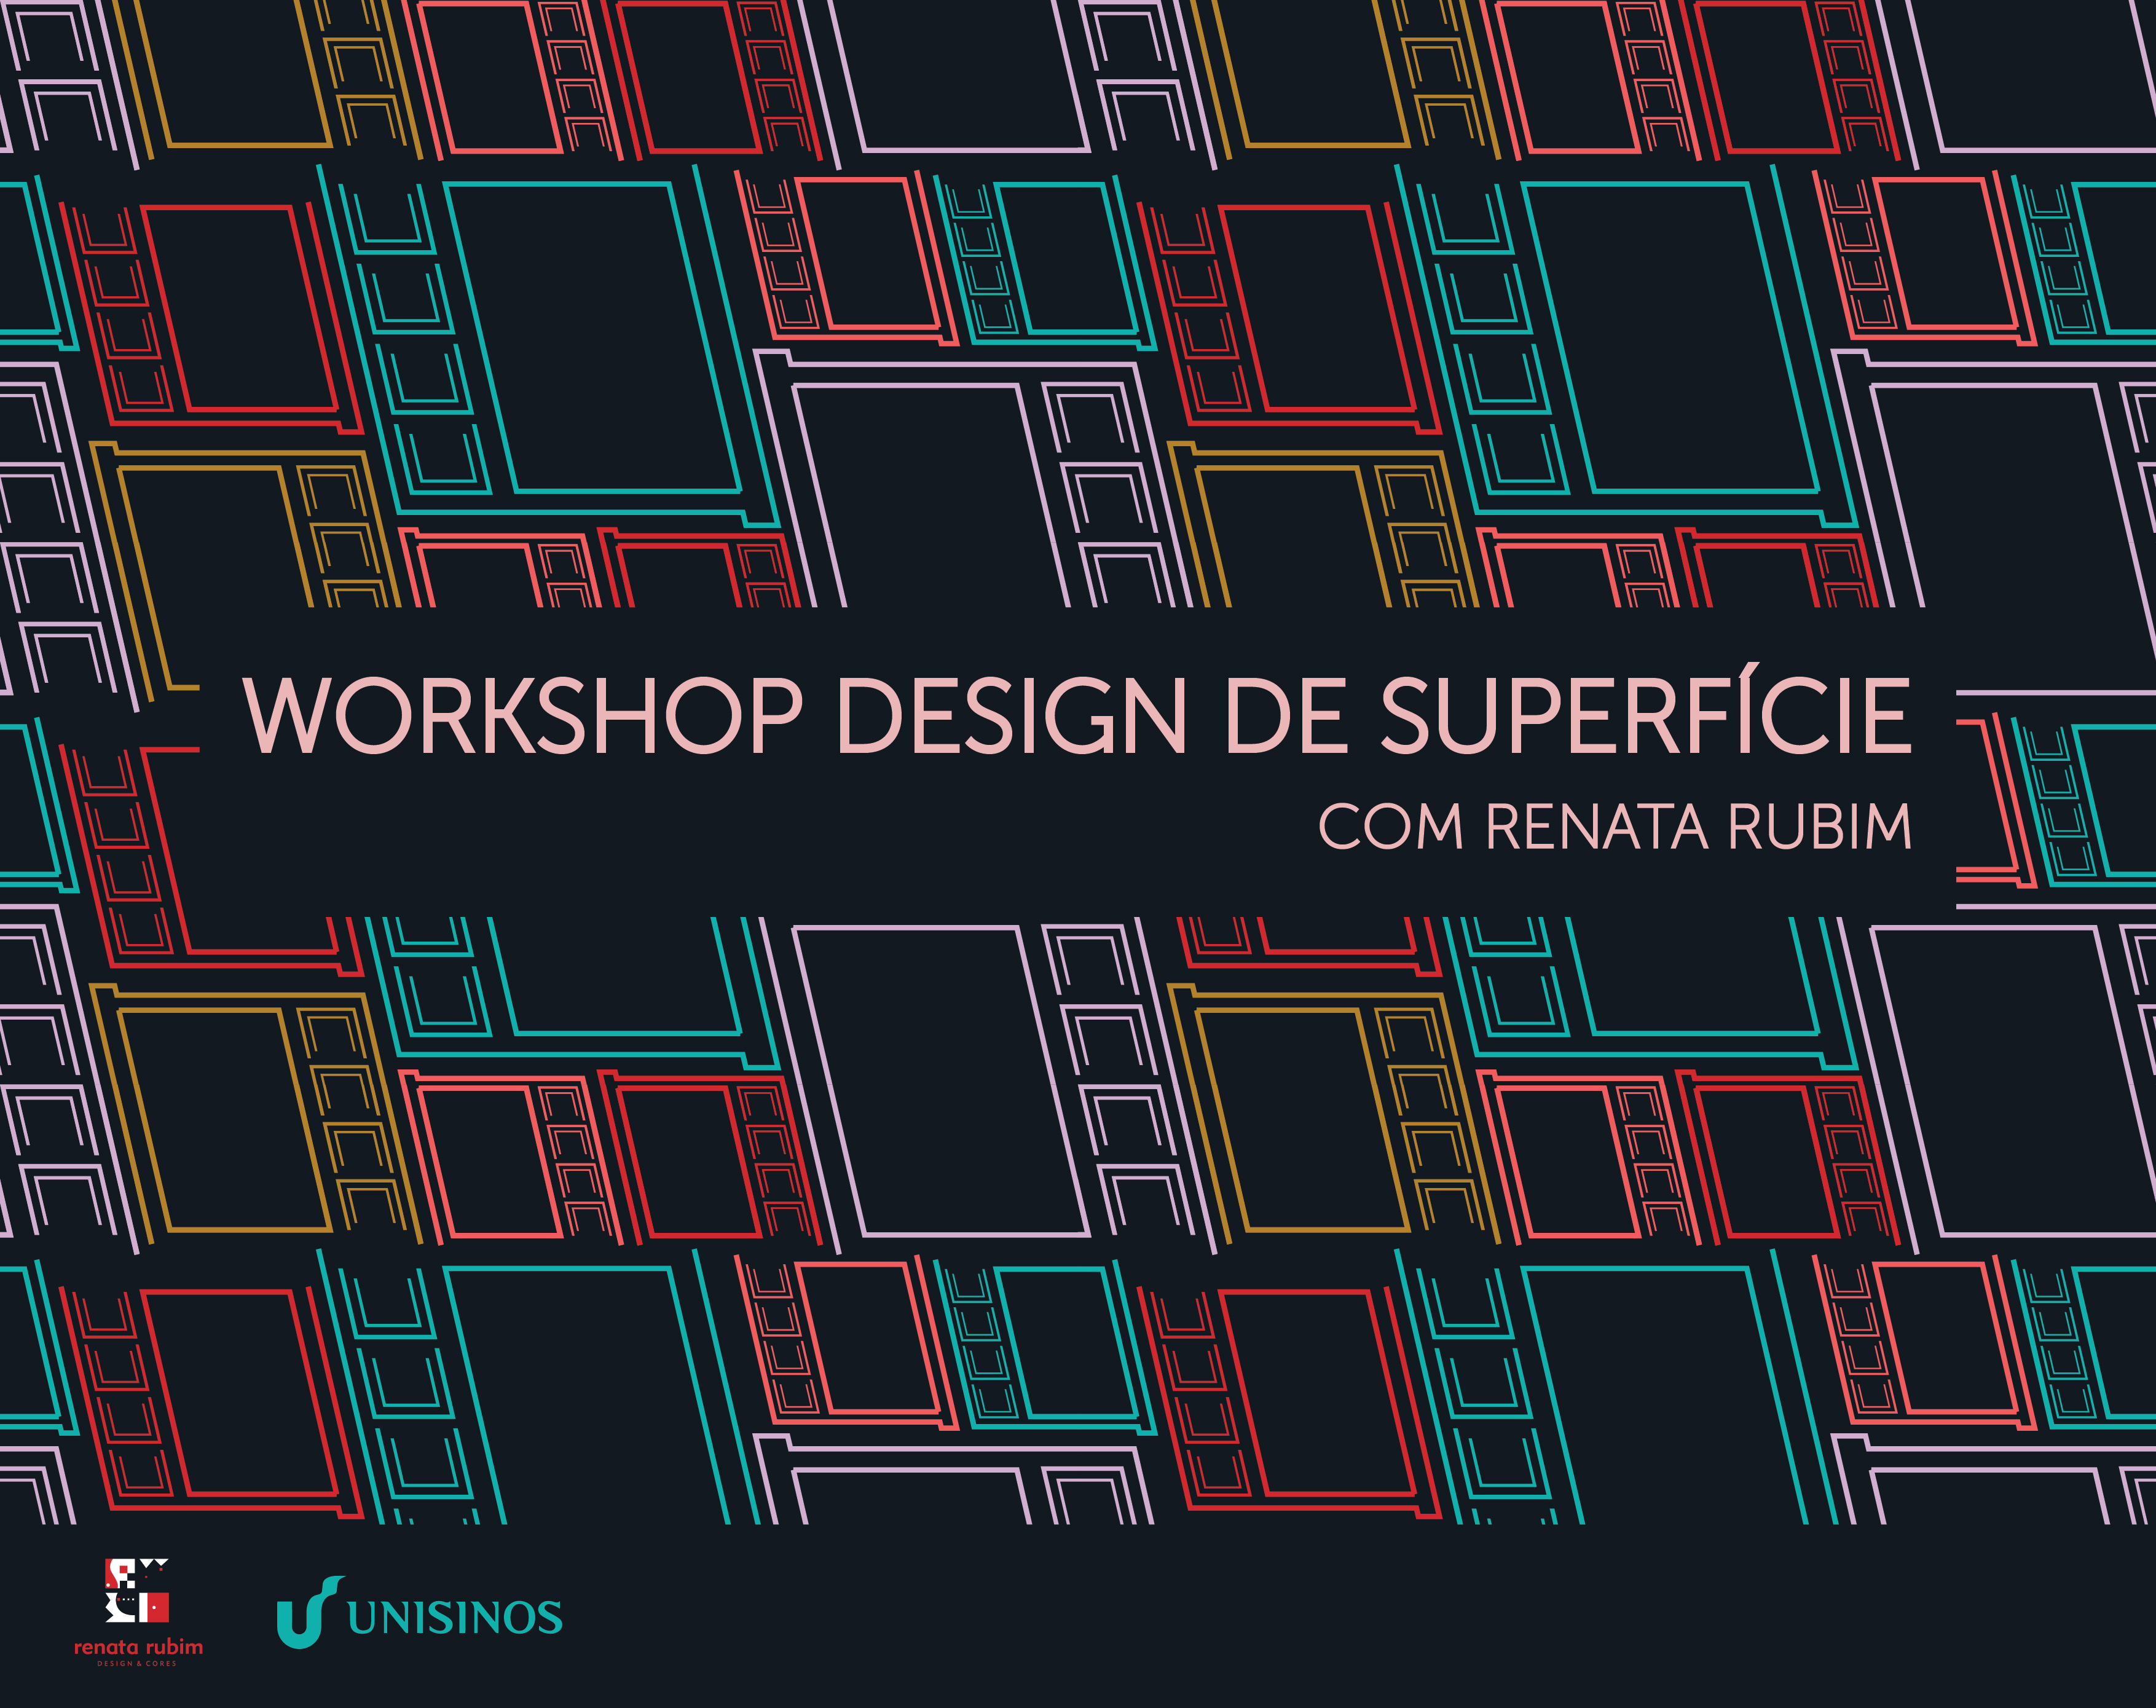 Workshop Design de Superfície | Unisinos